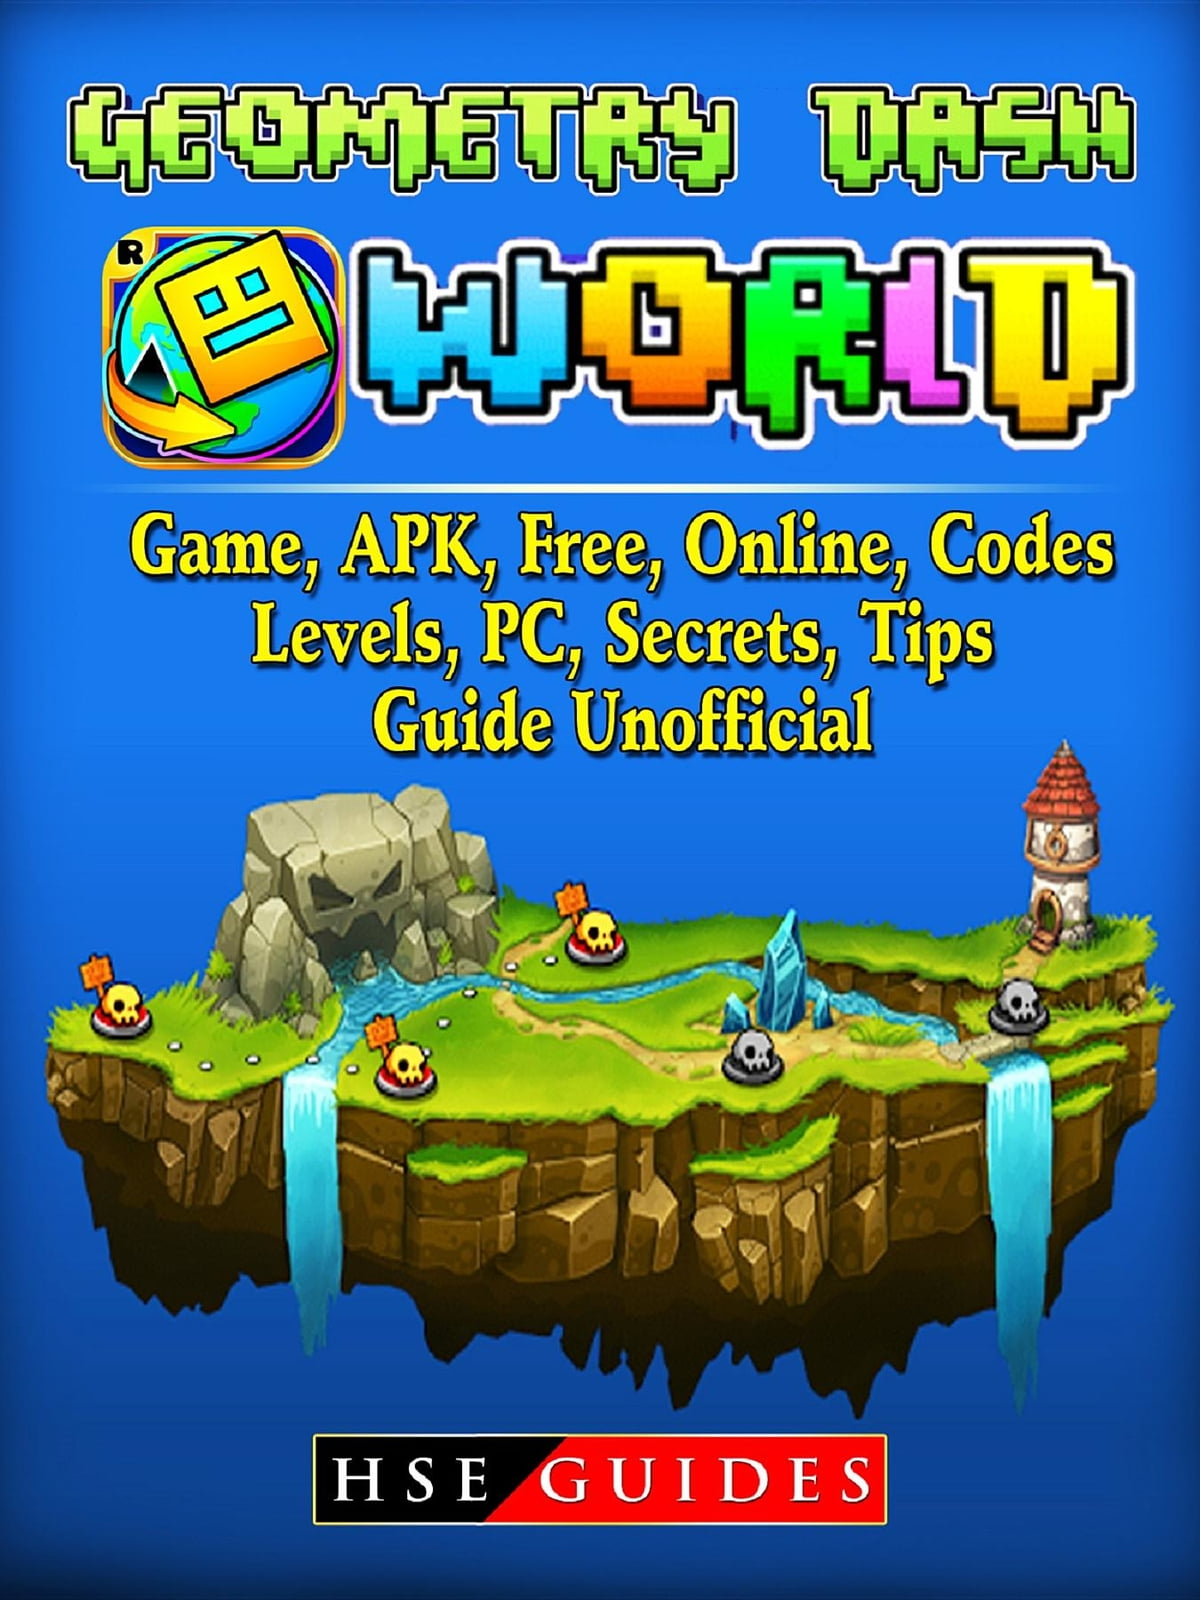 Geometry Dash World, Game, APK, Free, Online, Codes, Levels, PC, Secrets,  Tips, Guide Unofficial ebook by Hse Guides - Rakuten Kobo